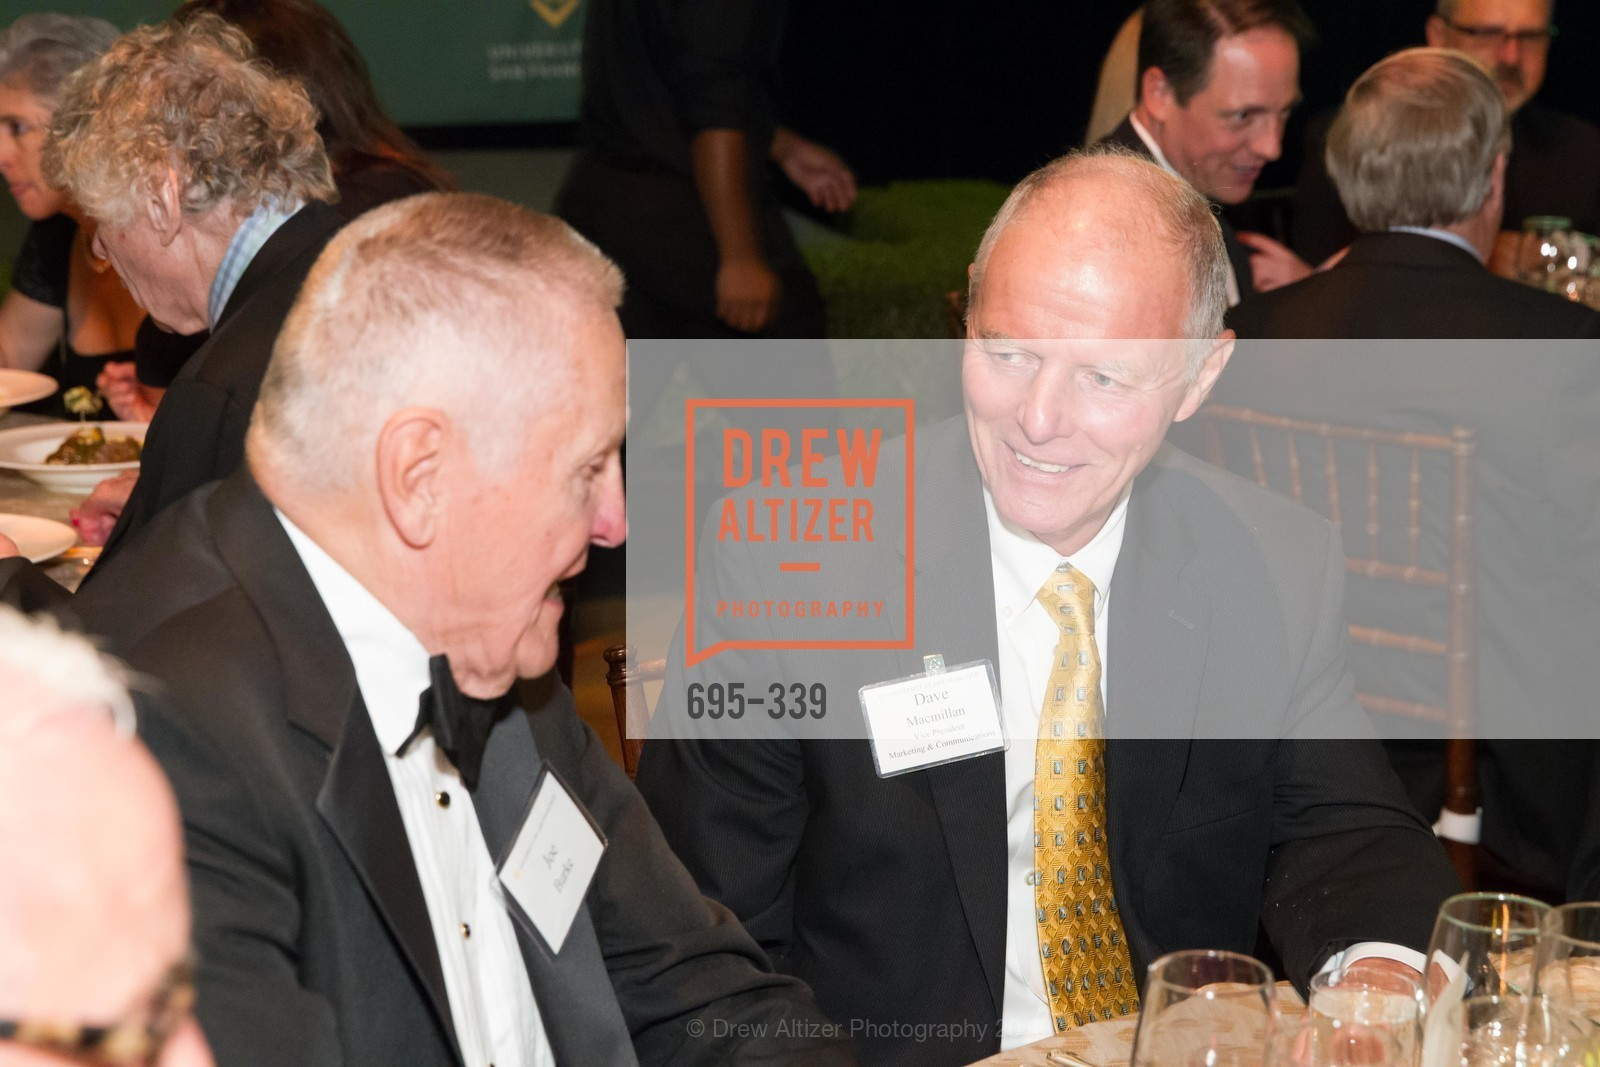 Dave Macmillan, University of San Francisco Alumni Awards Gala 2015, University of San Francisco, October 2nd, 2015,Drew Altizer, Drew Altizer Photography, full-service agency, private events, San Francisco photographer, photographer california